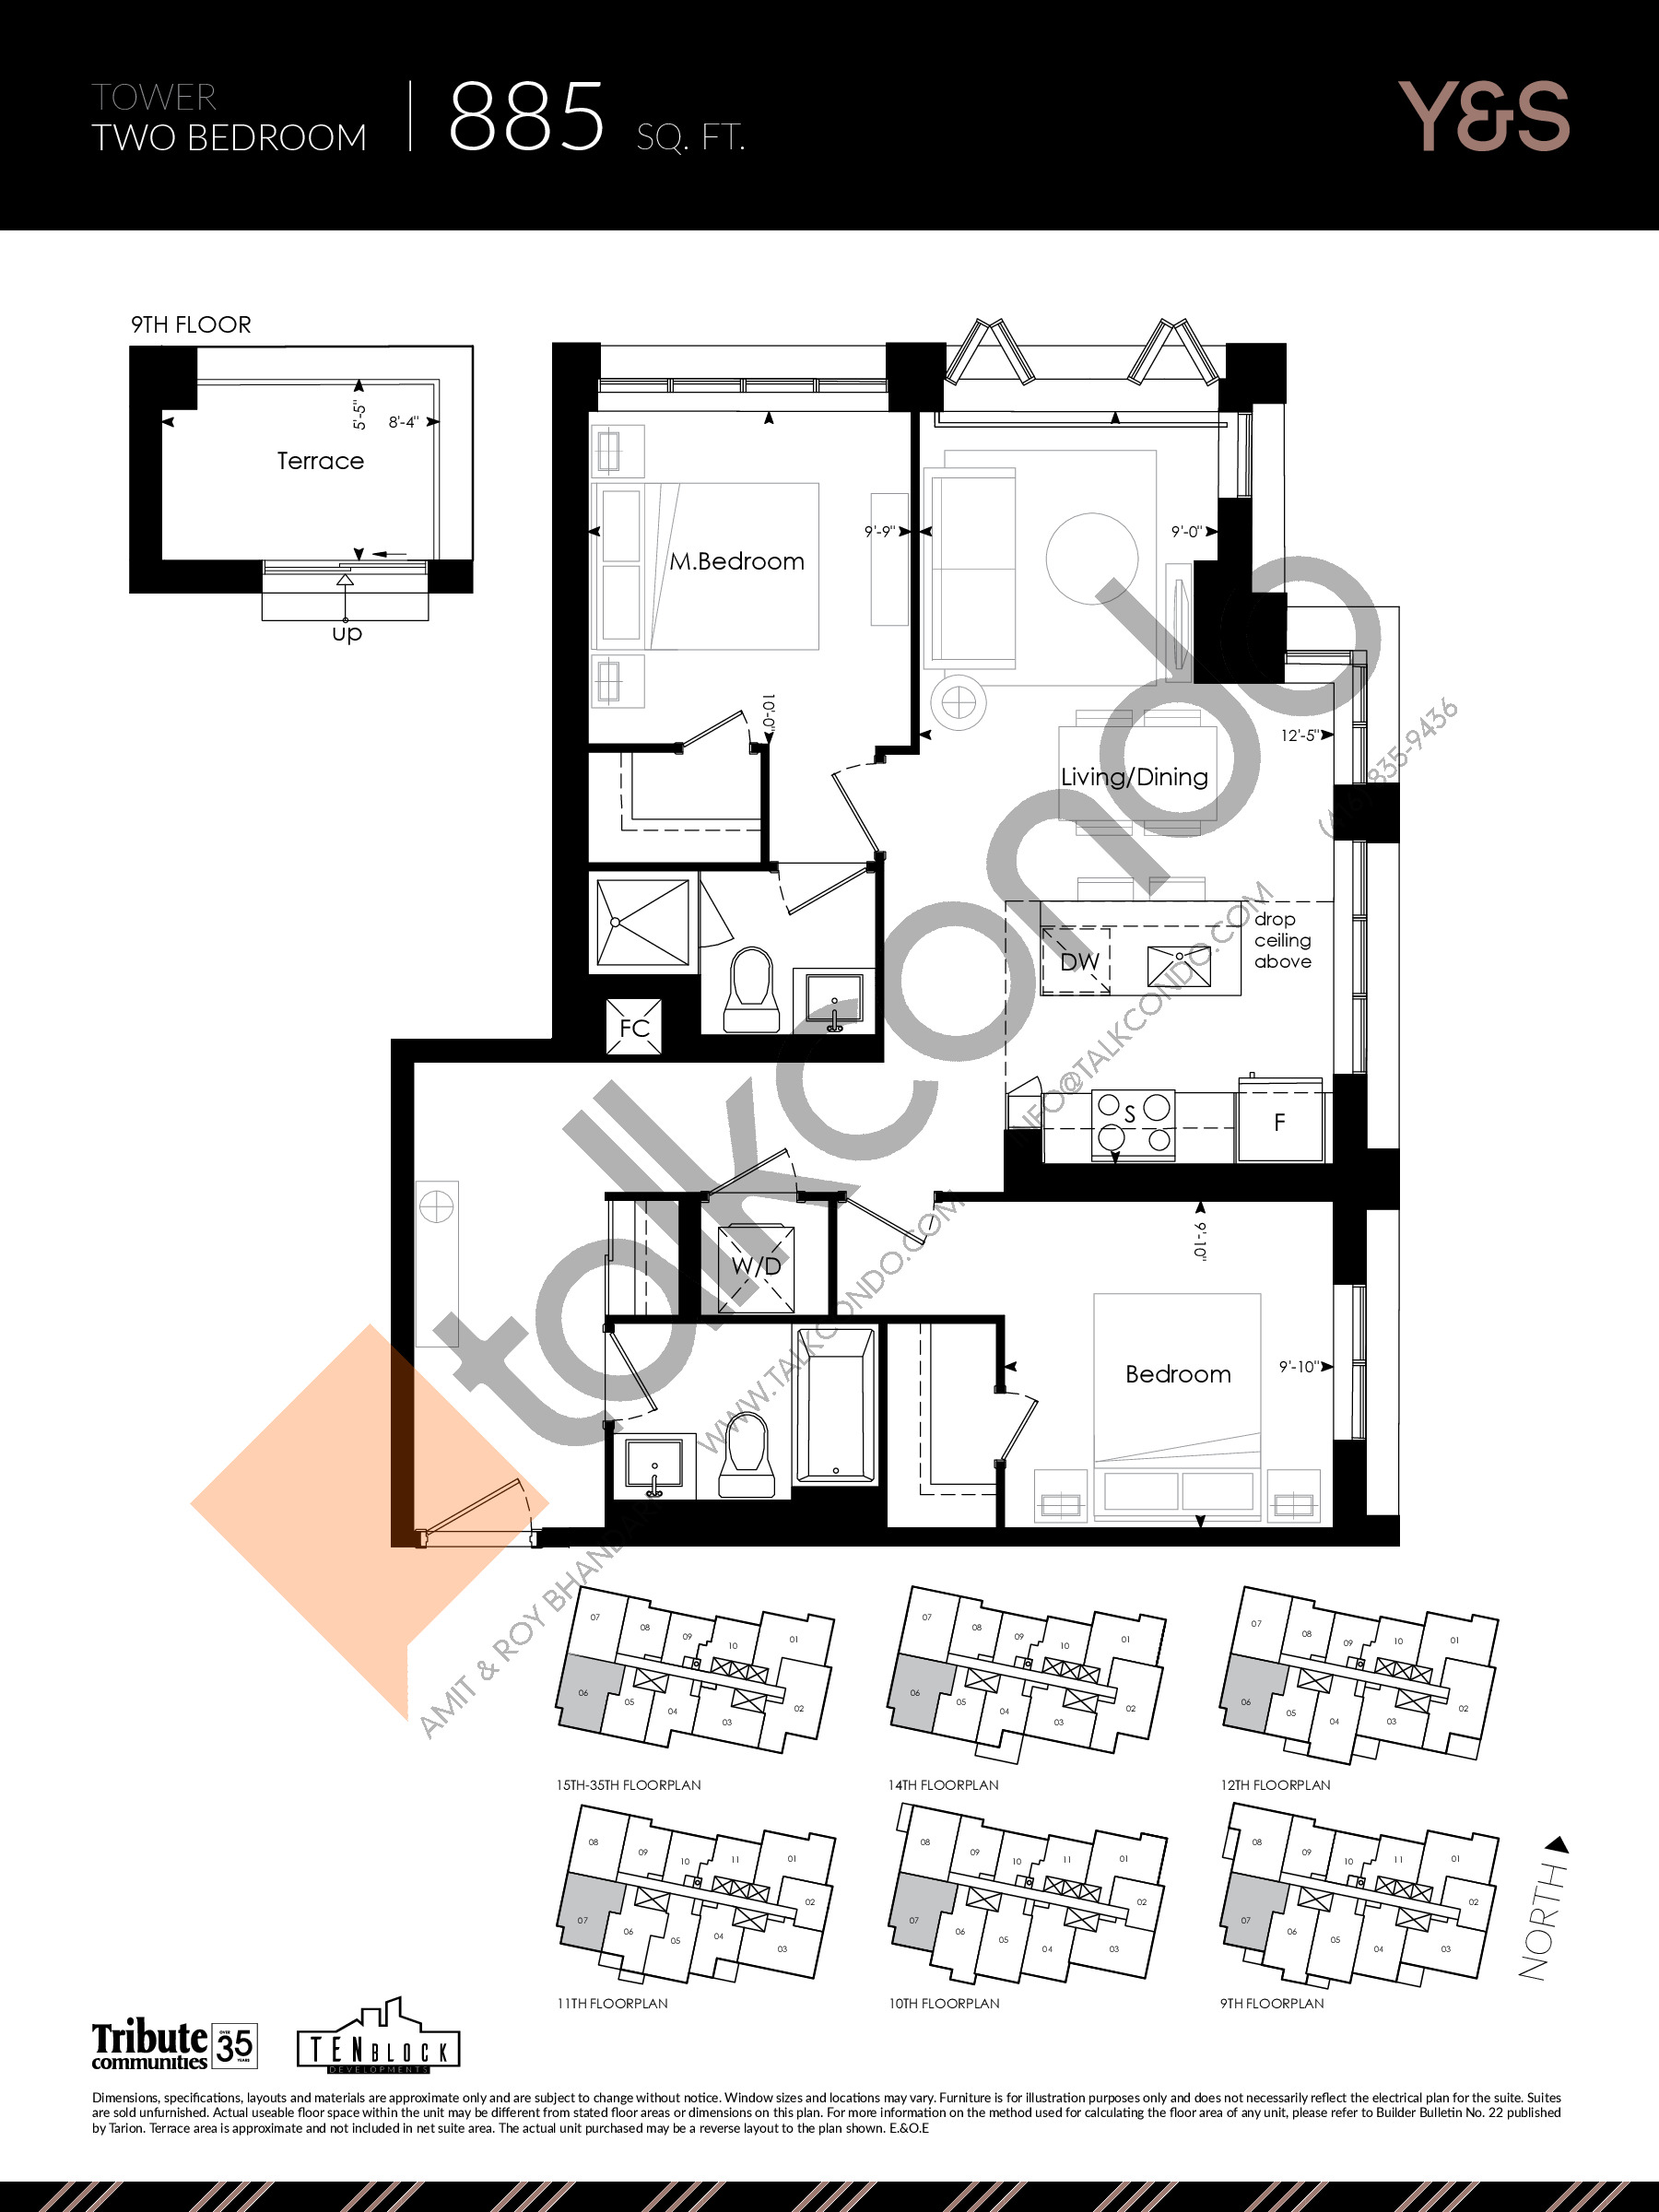 885 sq. ft. Floor Plan at Y&S Condos - 885 sq.ft